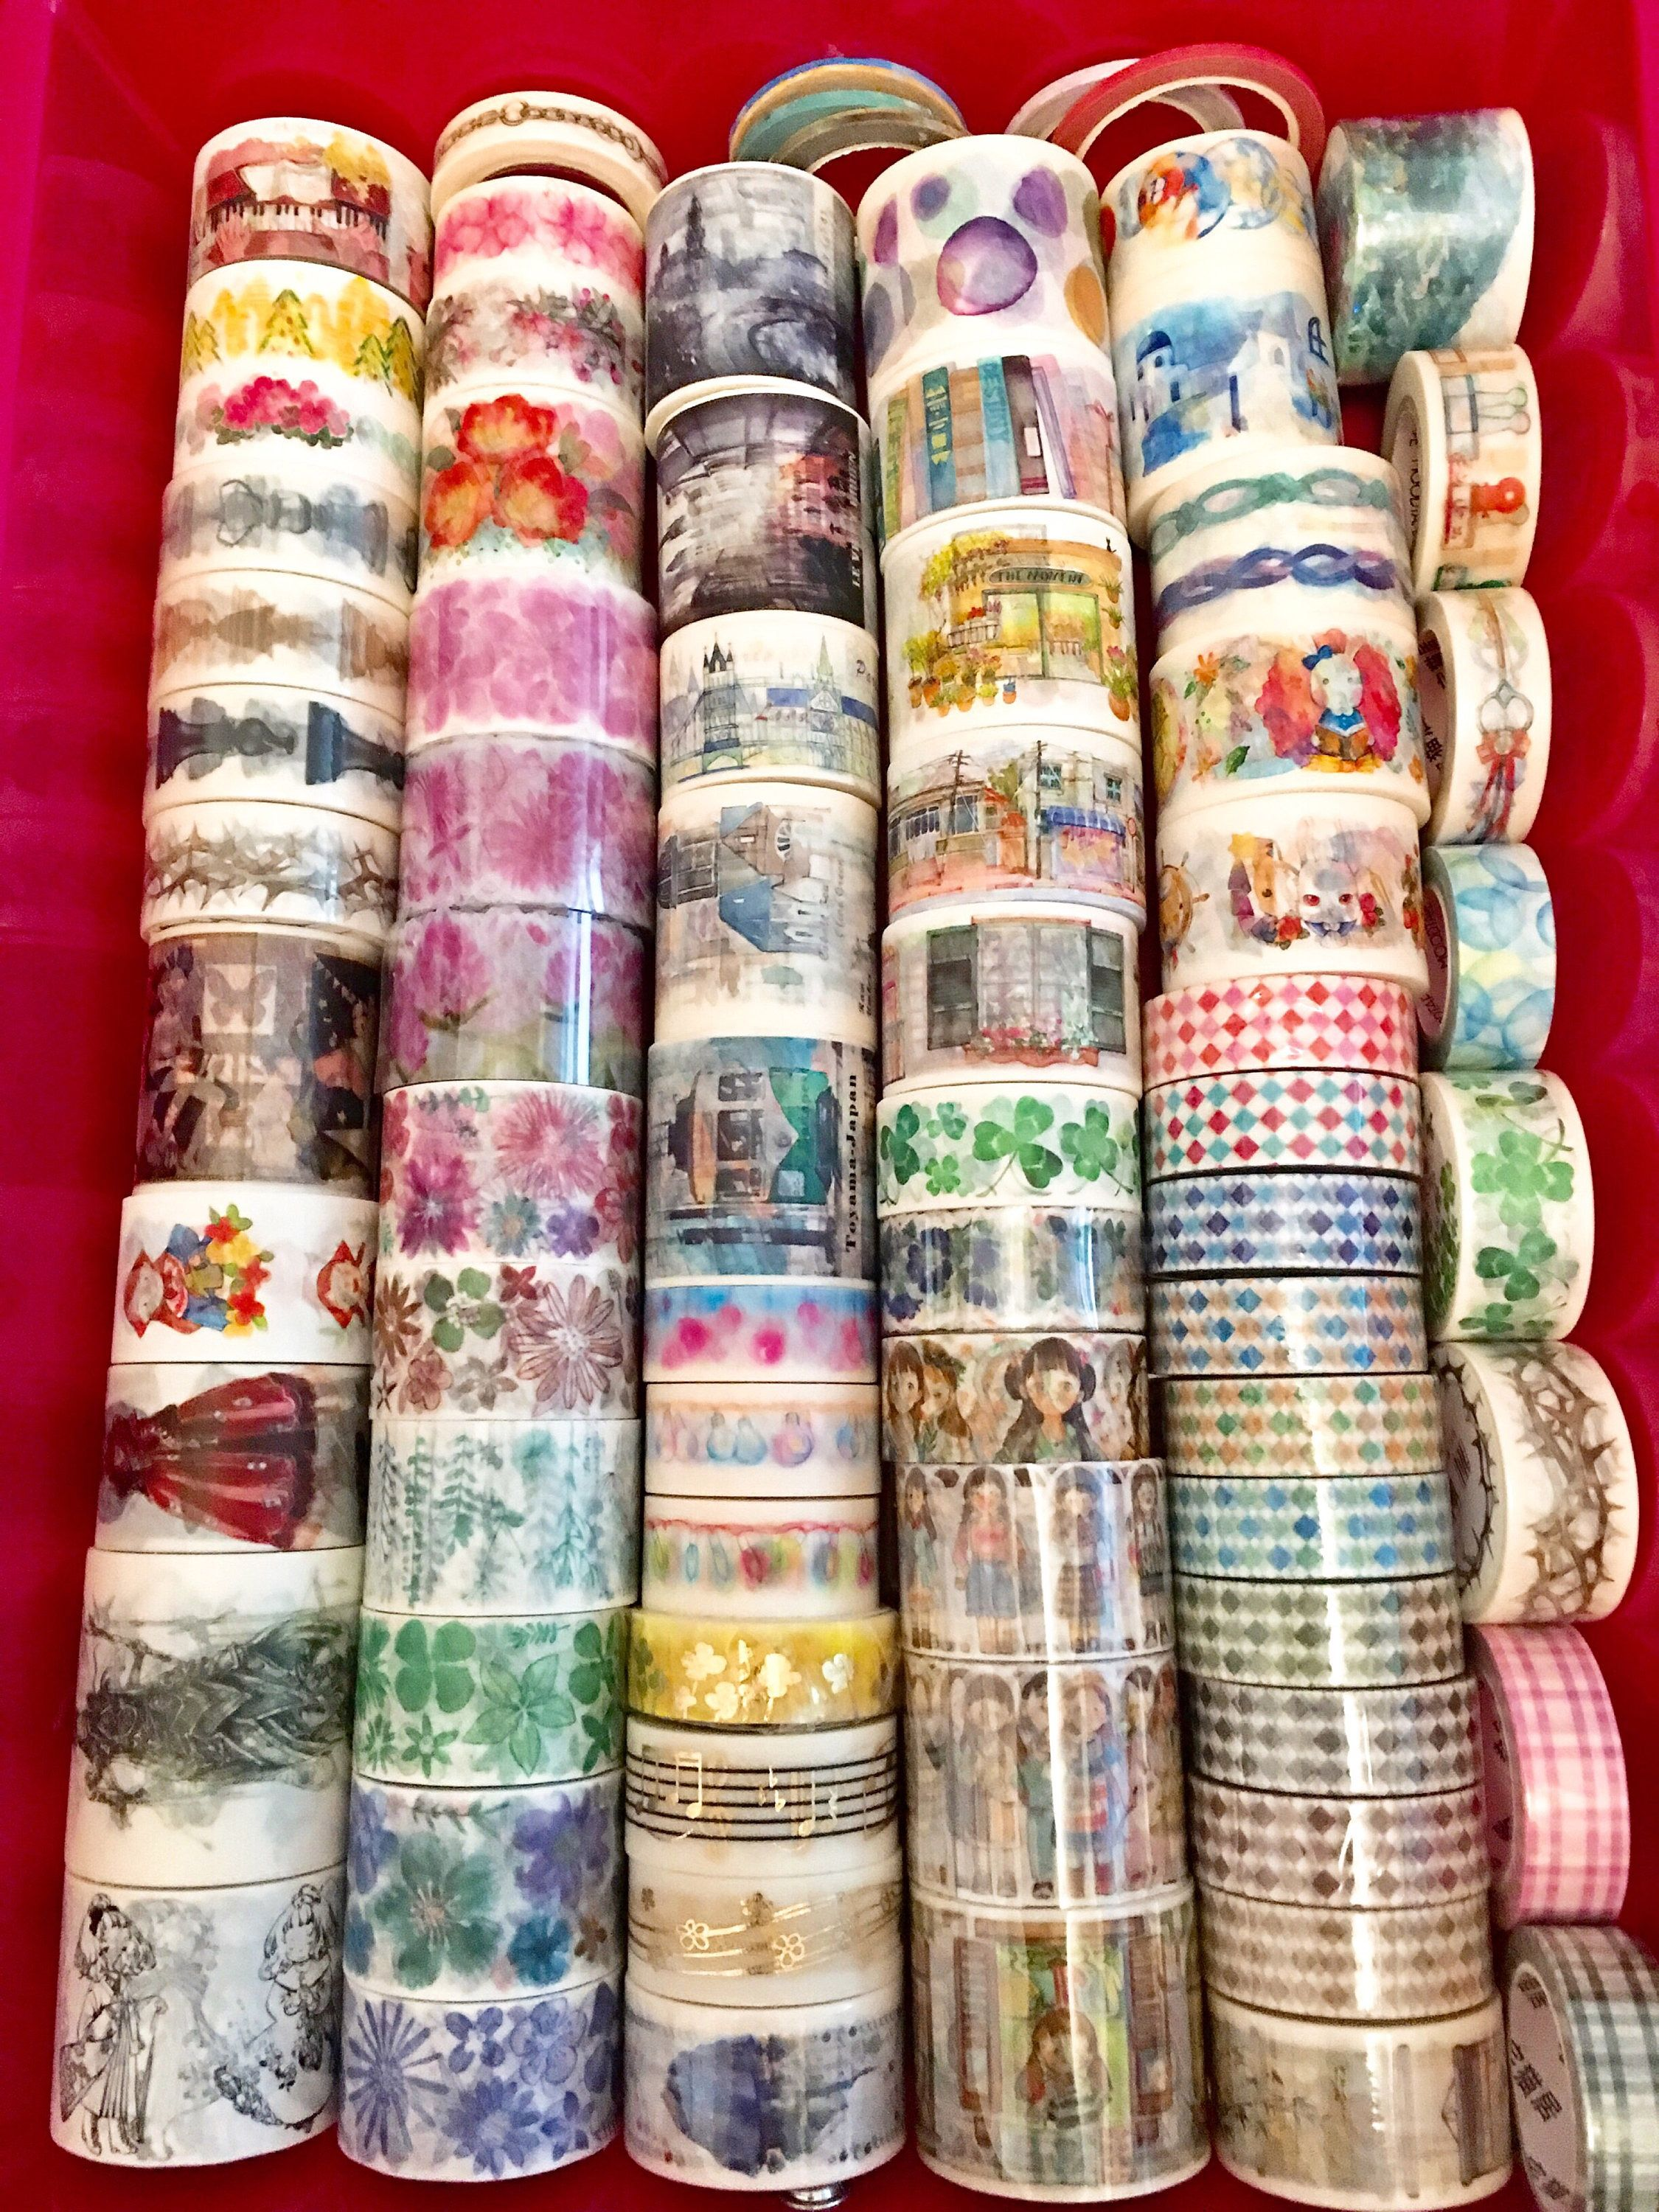 CUSTOMIZED ORDERS OnlyChoose Your OwnWashi Tape Samples